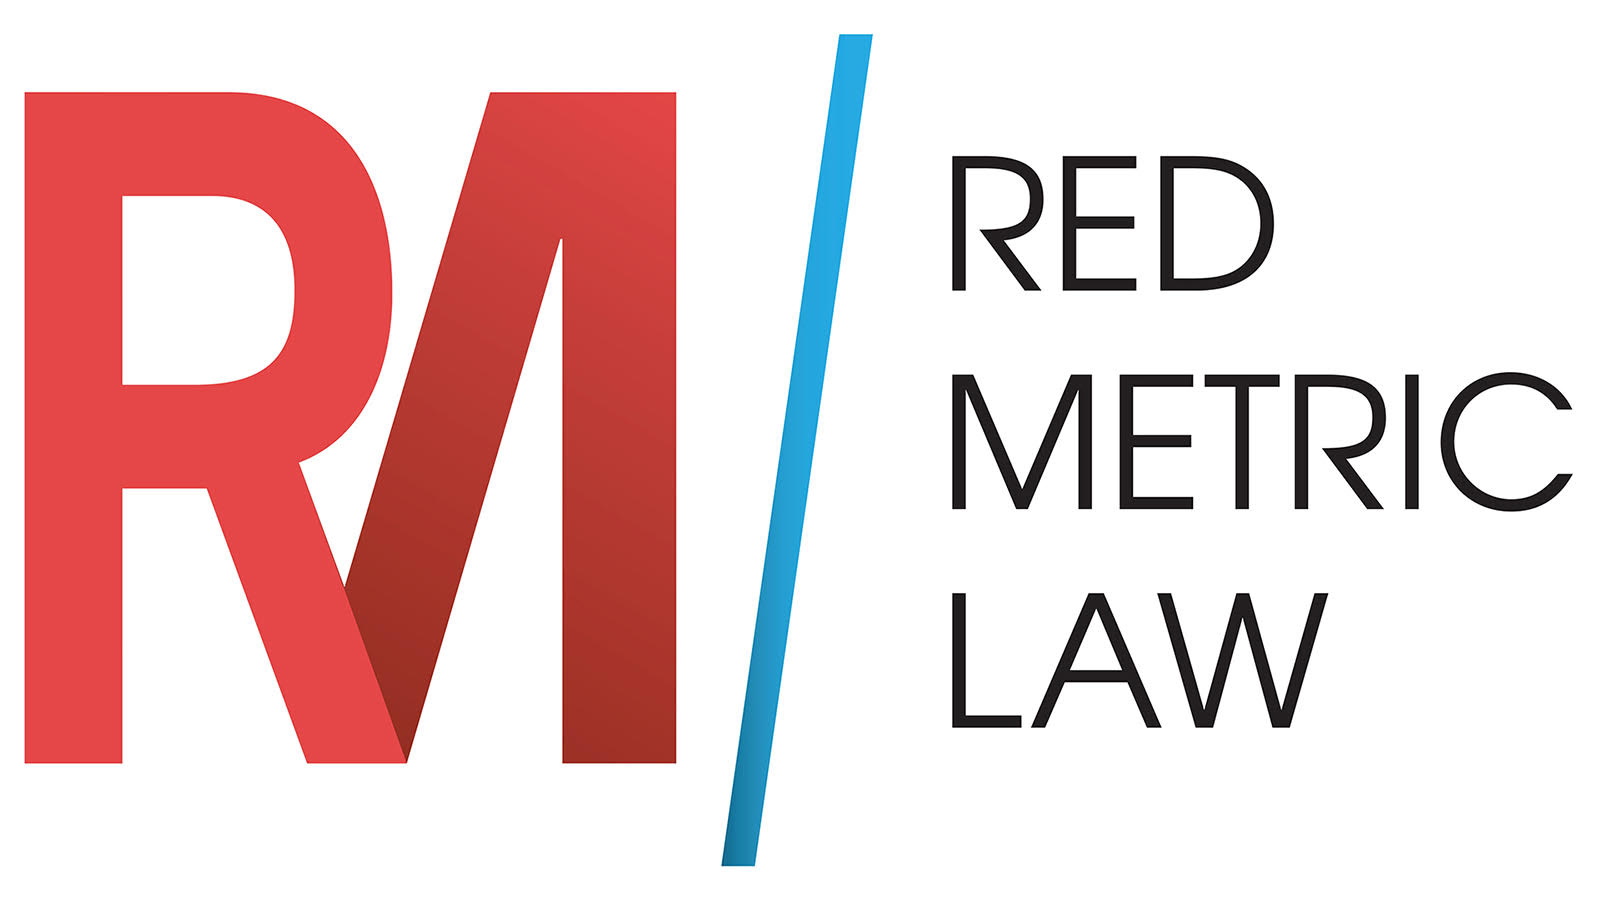 Red Metric Law Firm Logo